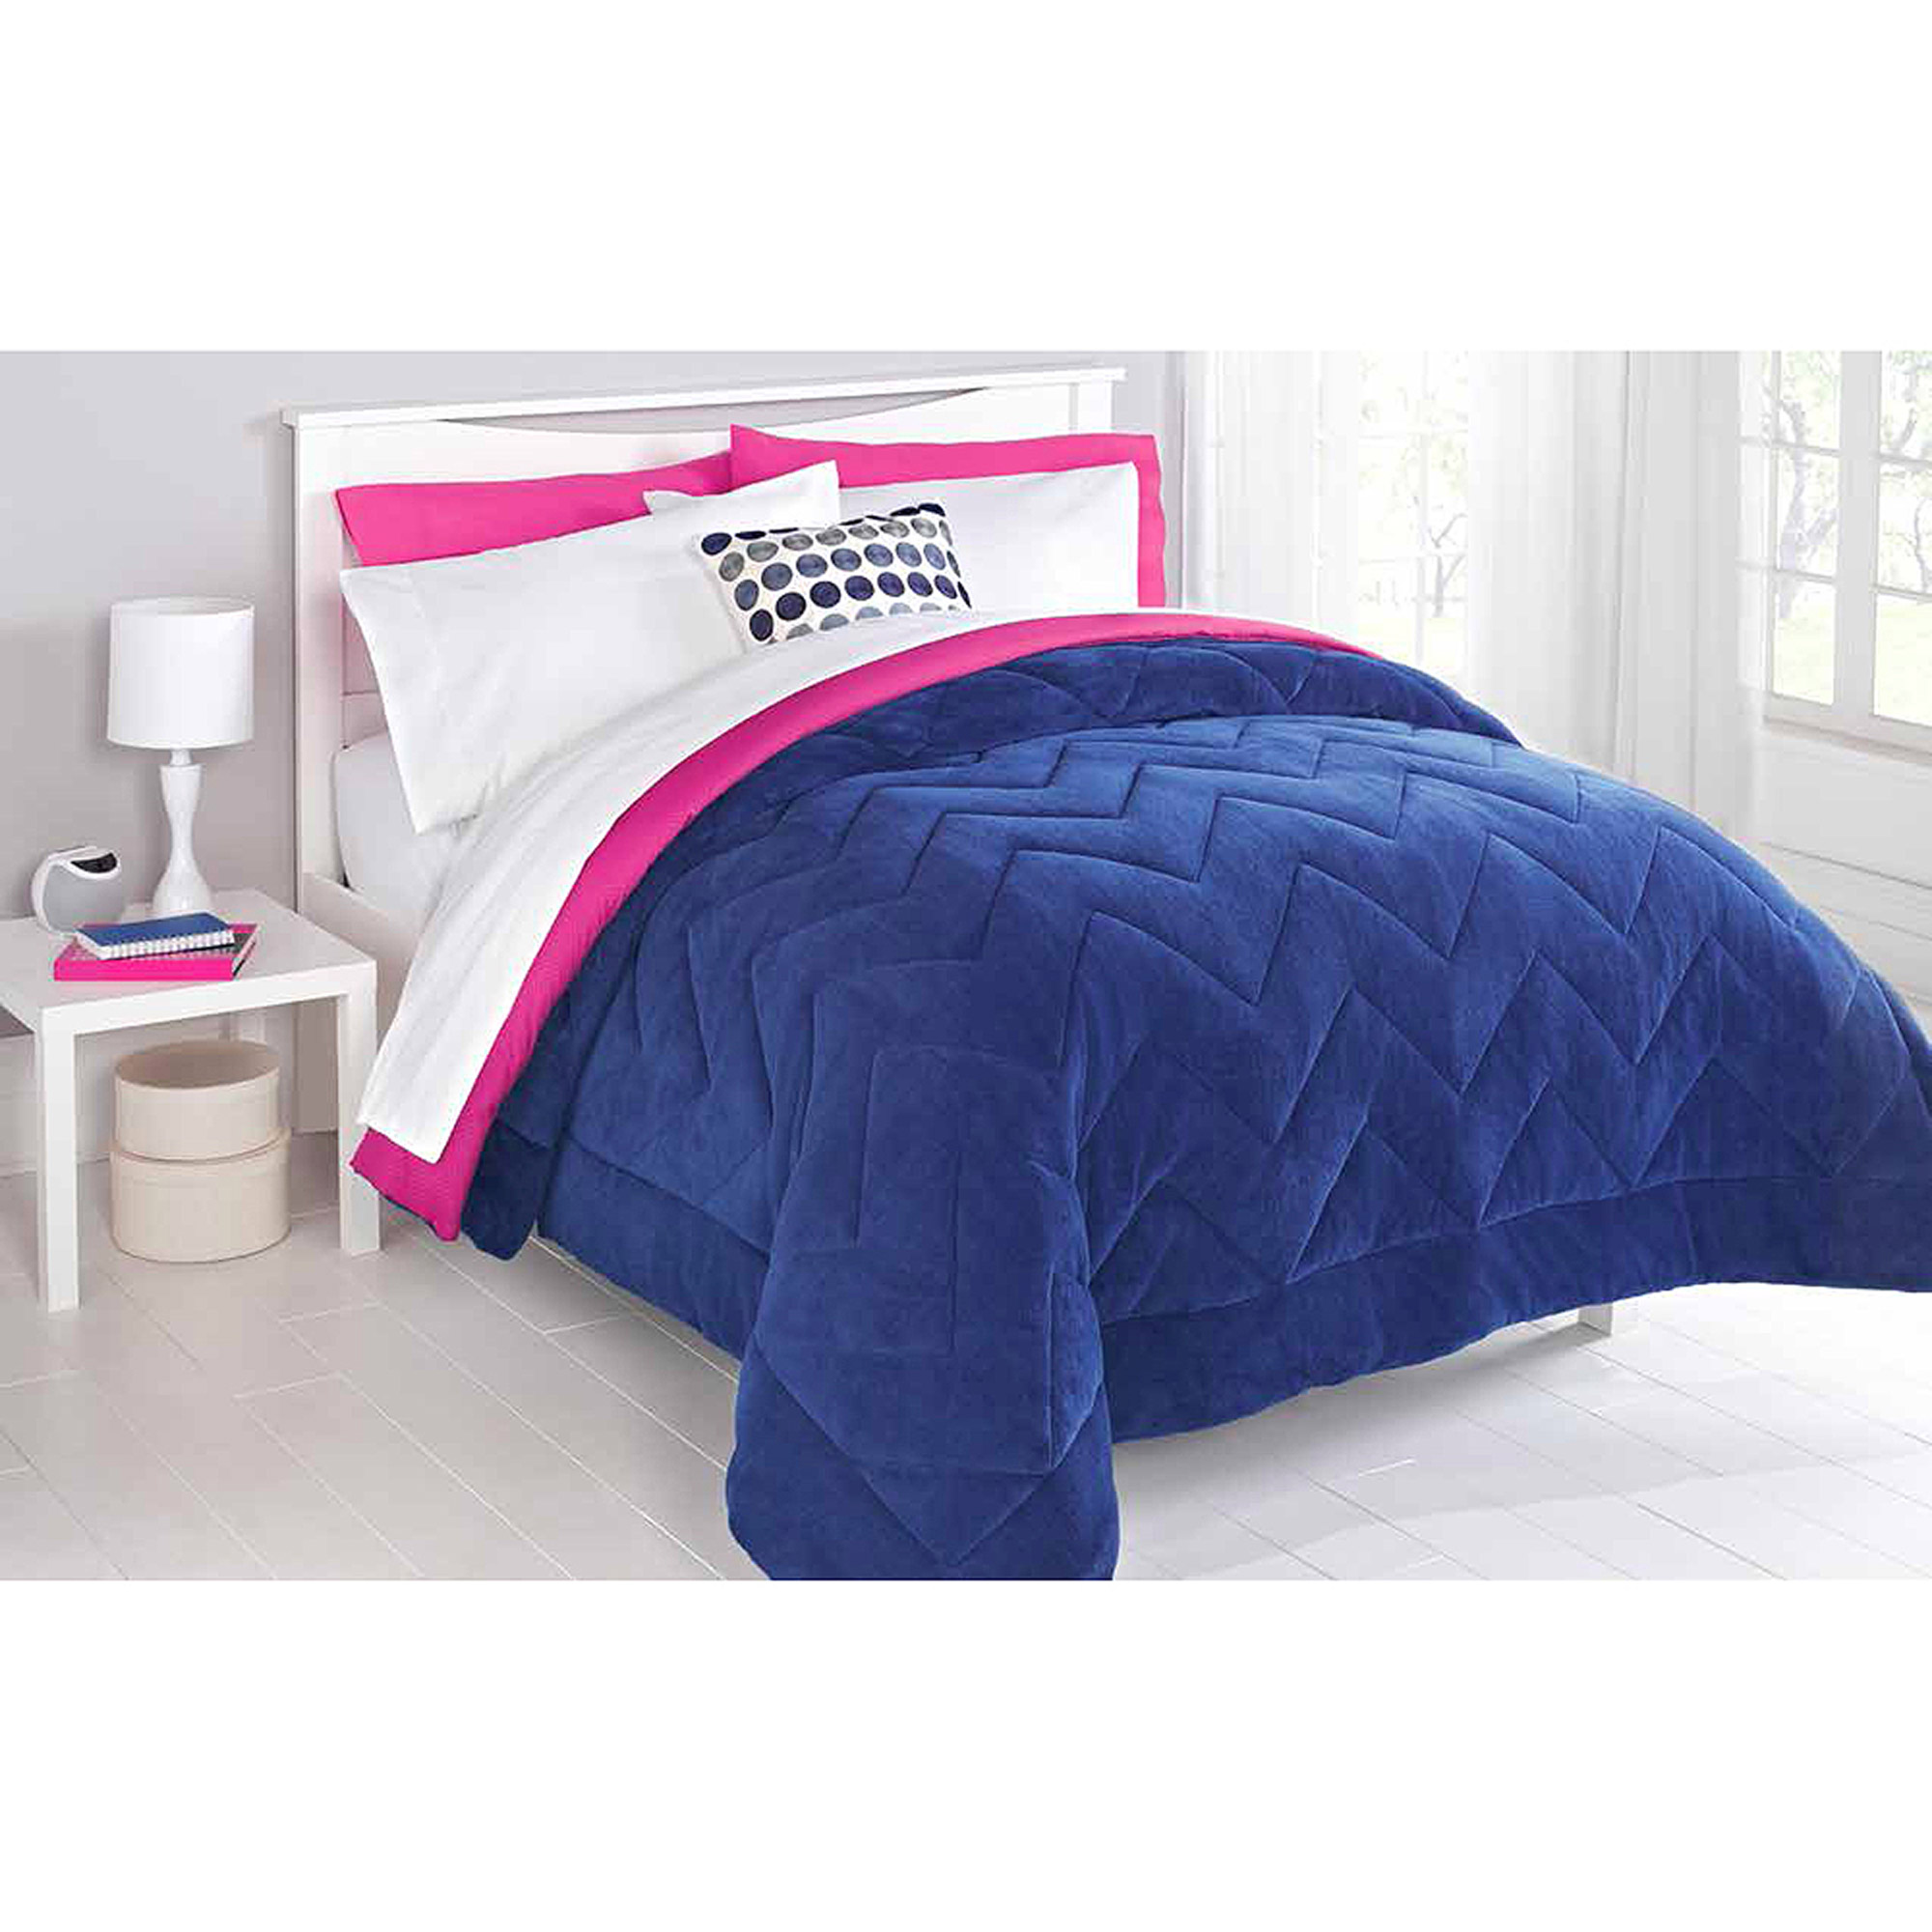 ***DISCONTINUED*** Mainstays Two-Toned Chevron-Stitched Reversible Plush Bedding Comforter